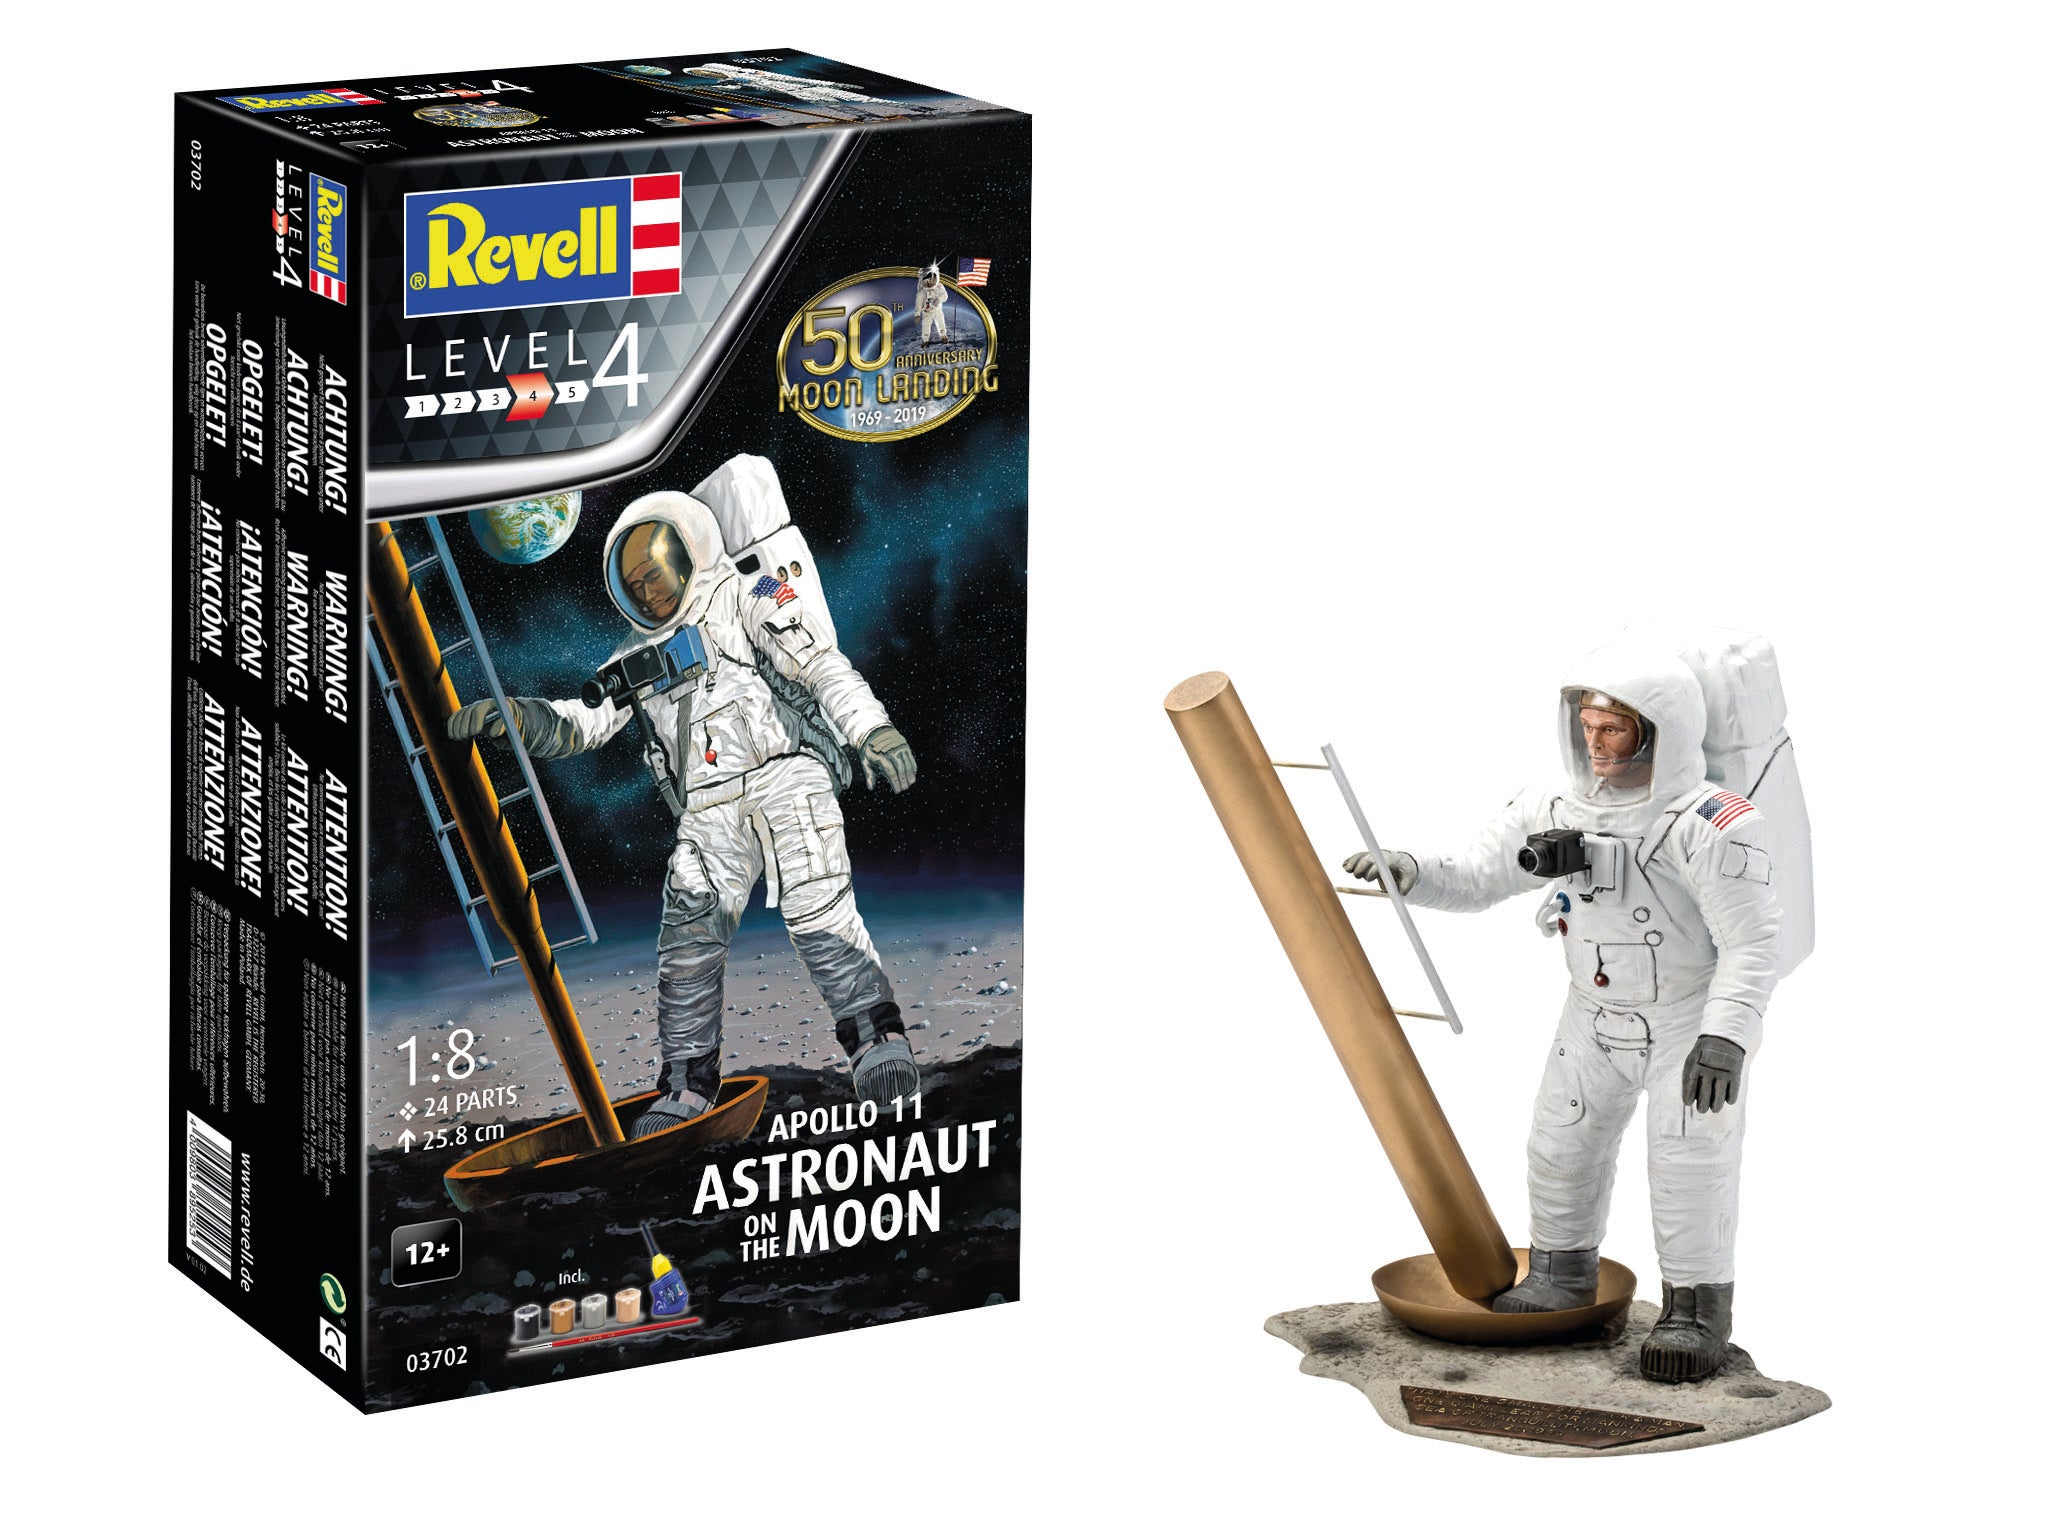 Revell Astronaut on the moon 03702